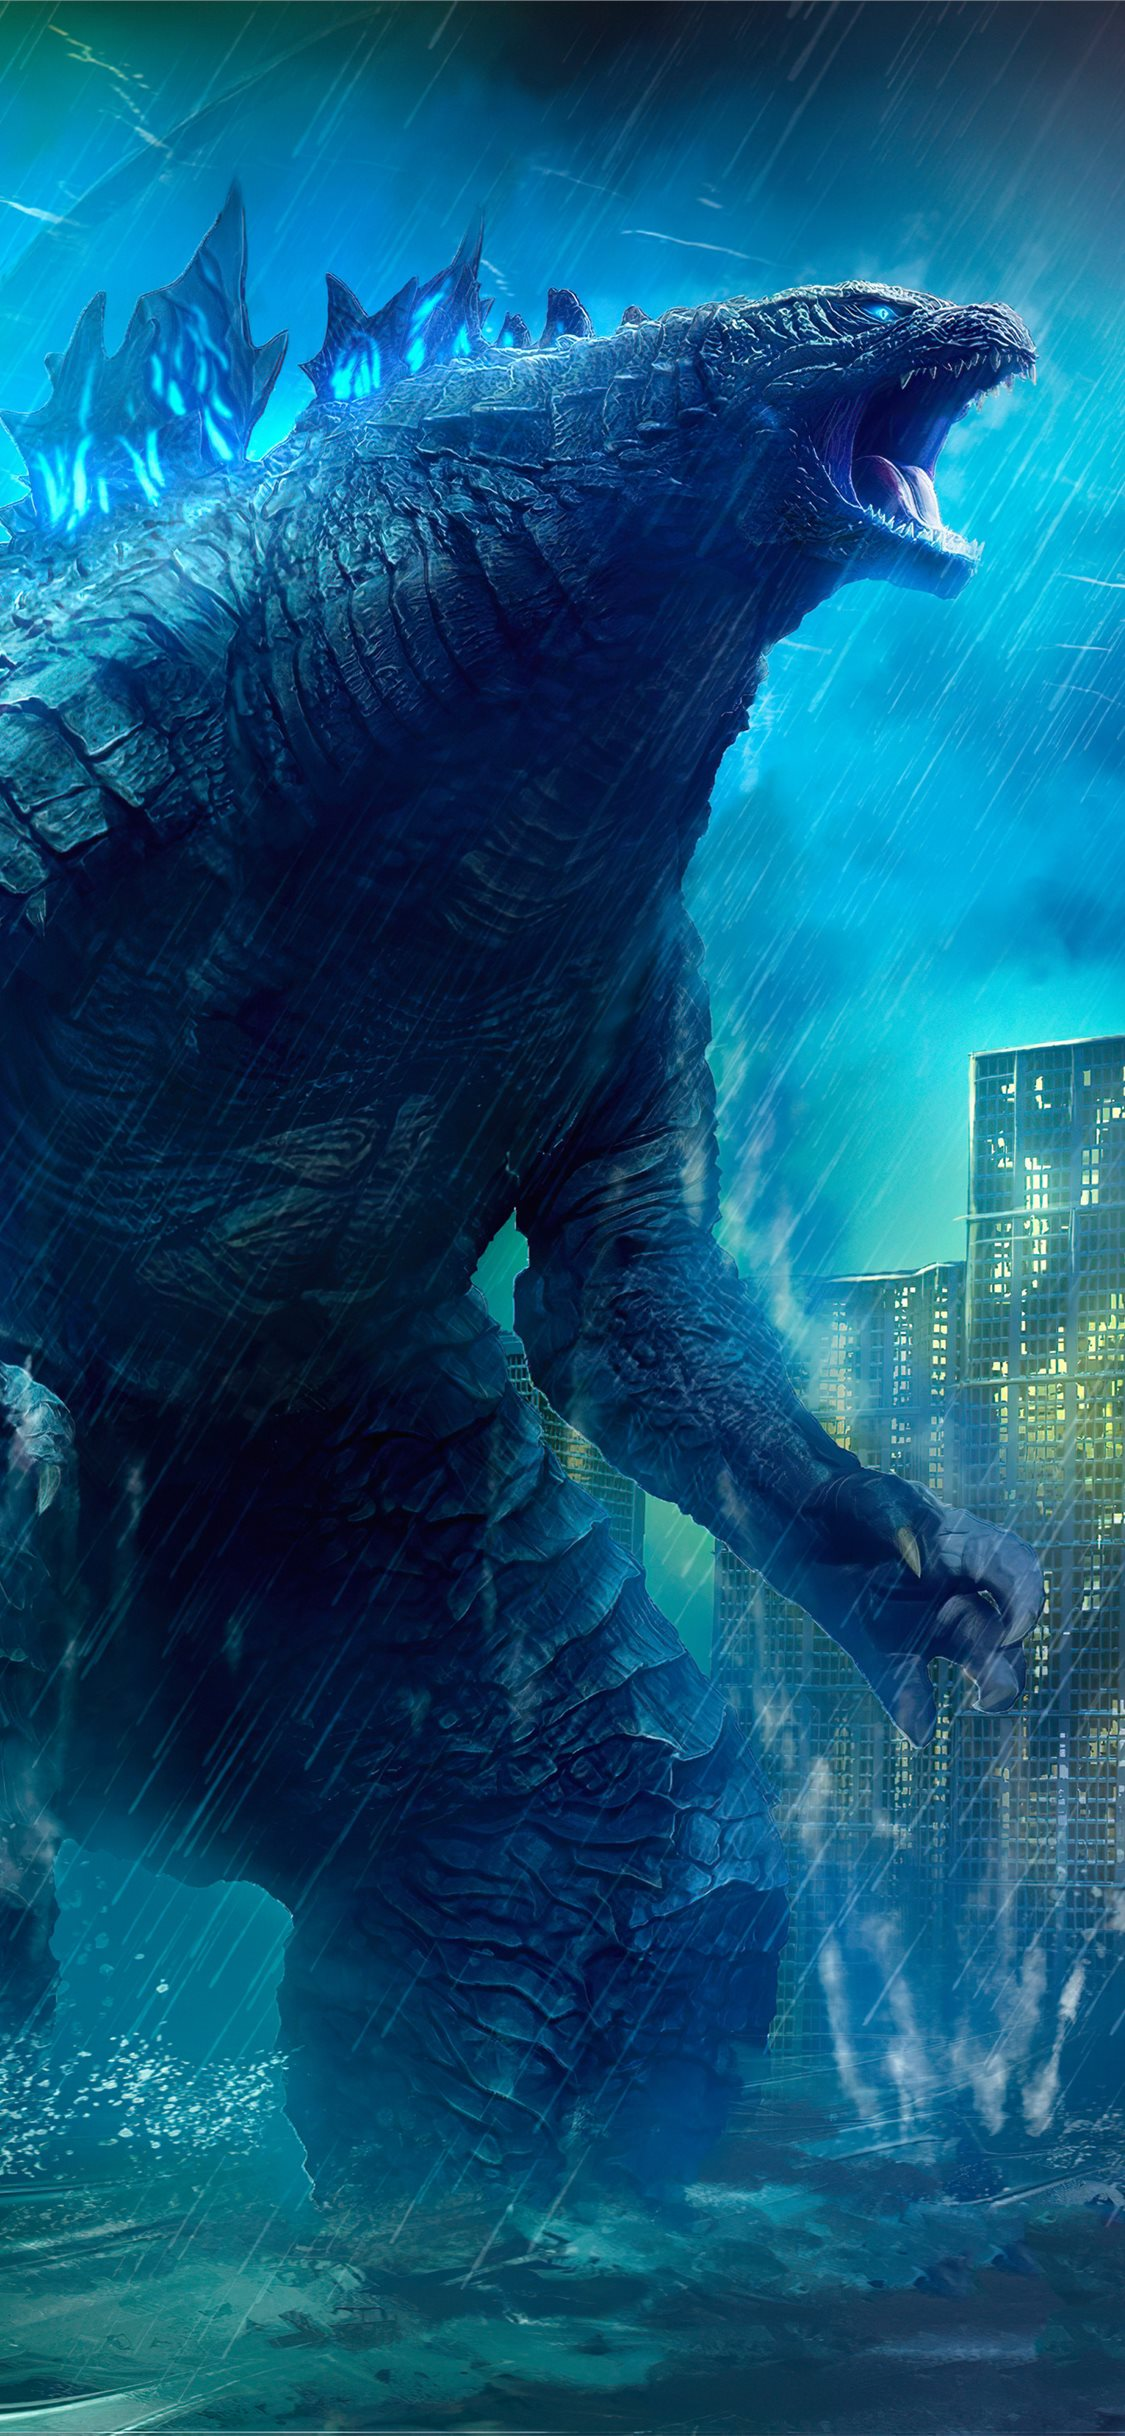 Godzilla King Of The Monsters Movie 4k Art Iphone X Wallpapers